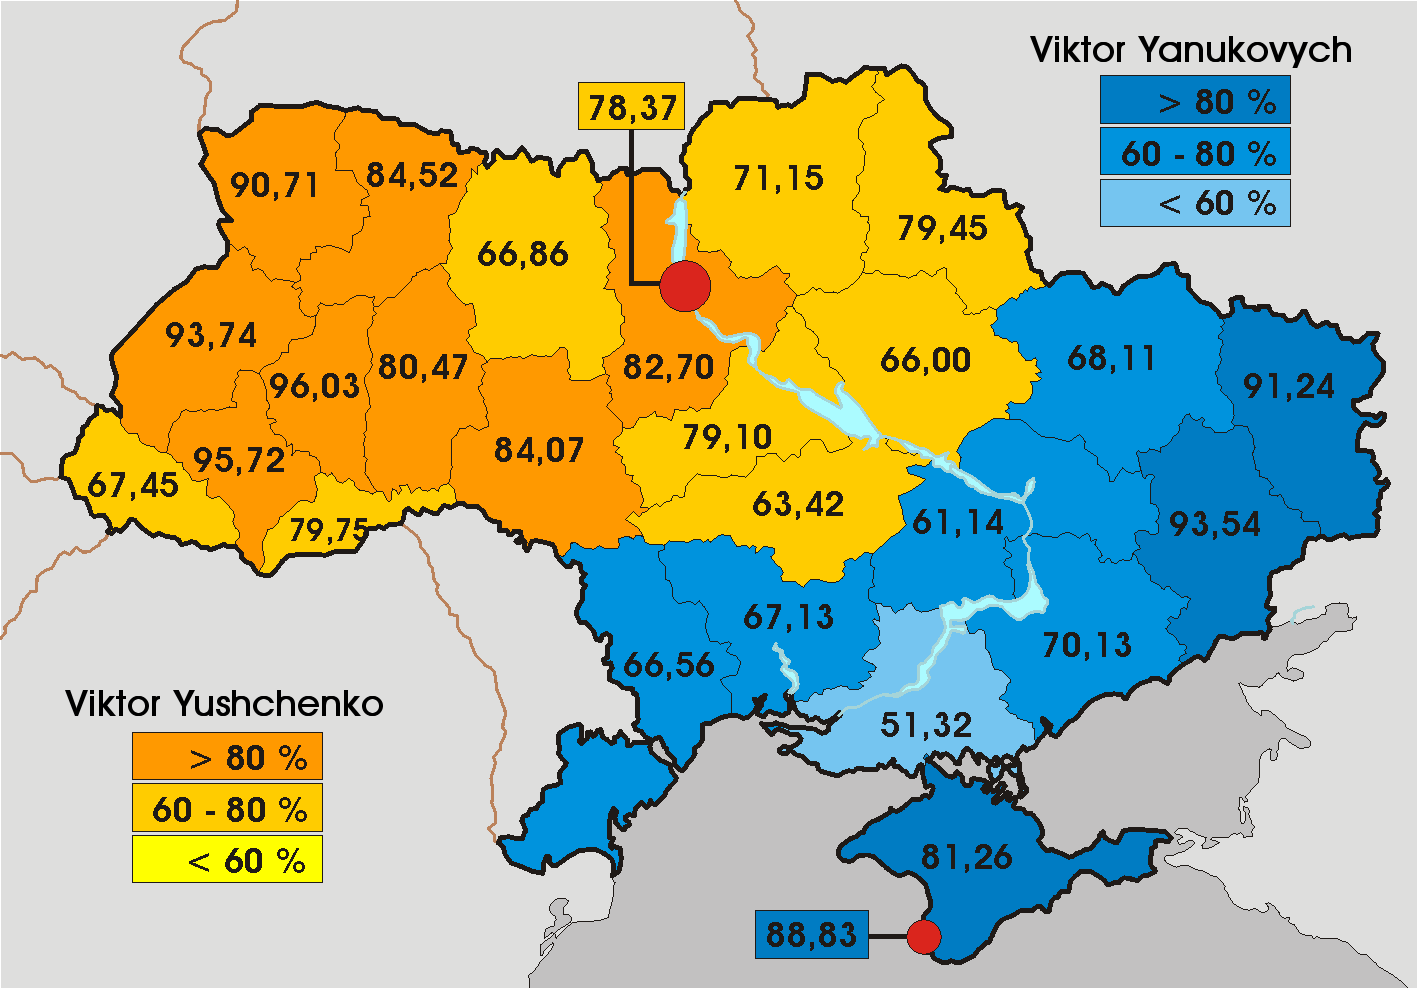 """The re-run in December 2004 was declared free and fair by the EU and the US. However, note the figures for the """"pro-Russian"""" Yanukovych in Crimea (81.26%) and Sevastopol (88.83%). They are almost identical to the results that were declared """"fraudulent"""" by the West only a month before. This time they were accepted as fair and legitimate."""